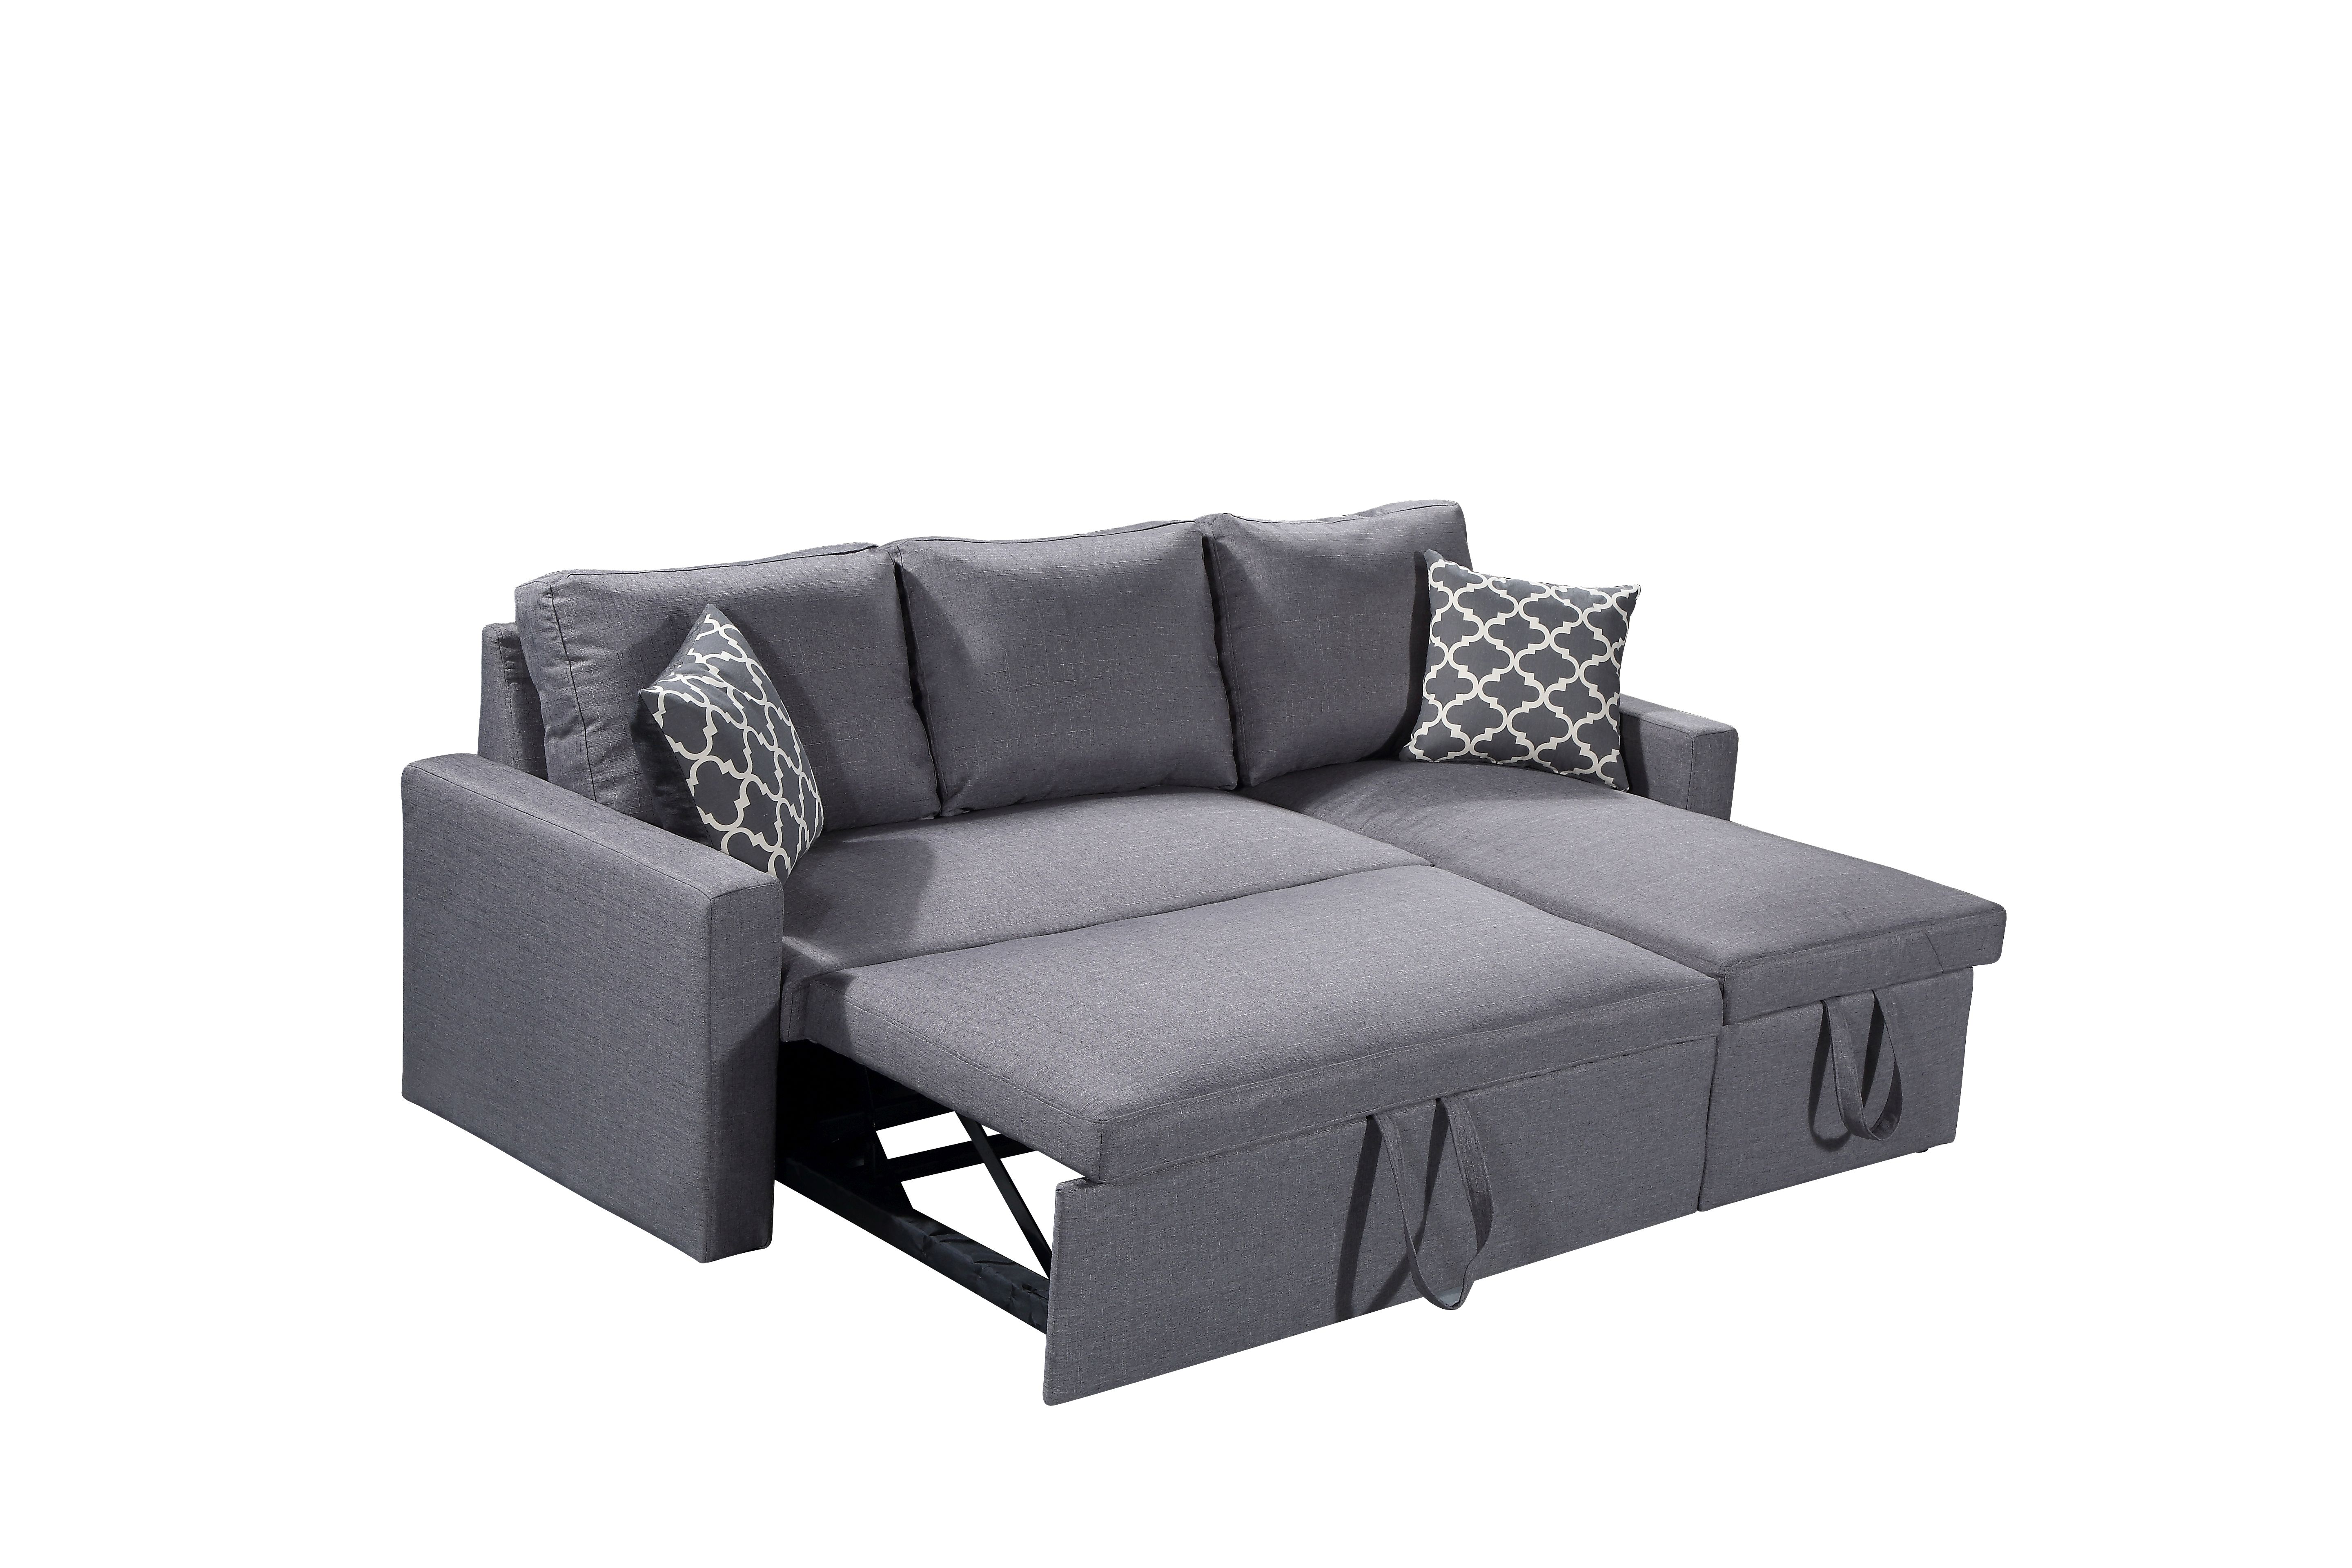 Wondrous Zara Sectional Sofa 3 In 1 Sofa Bed Storage Pdpeps Interior Chair Design Pdpepsorg